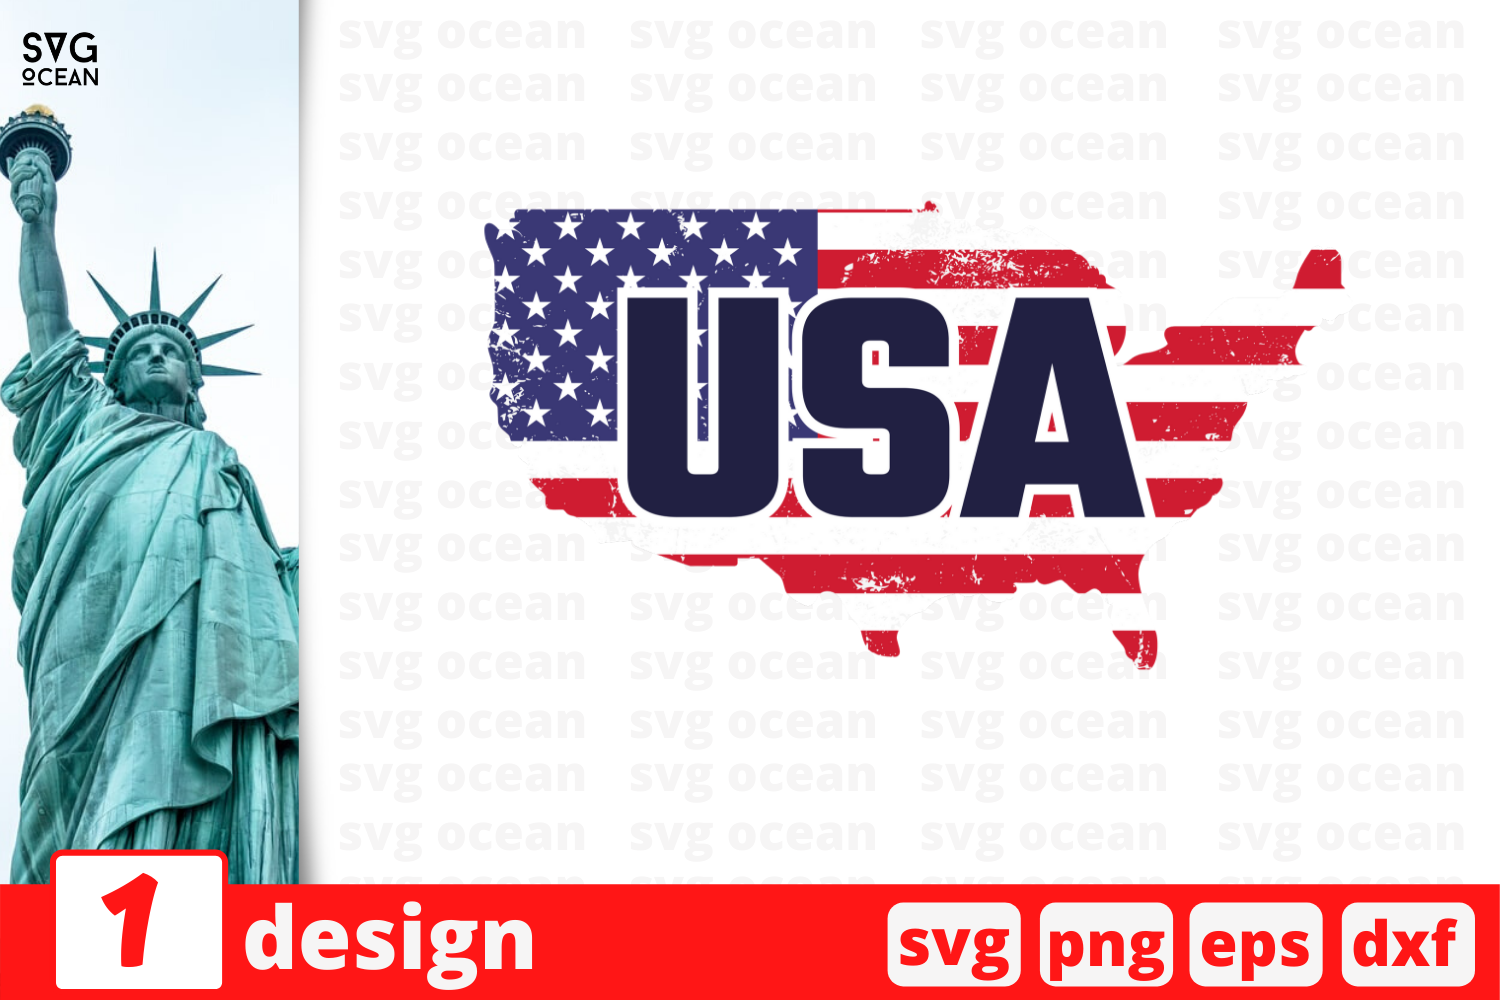 Download Free Usa Graphic By Svgocean Creative Fabrica for Cricut Explore, Silhouette and other cutting machines.